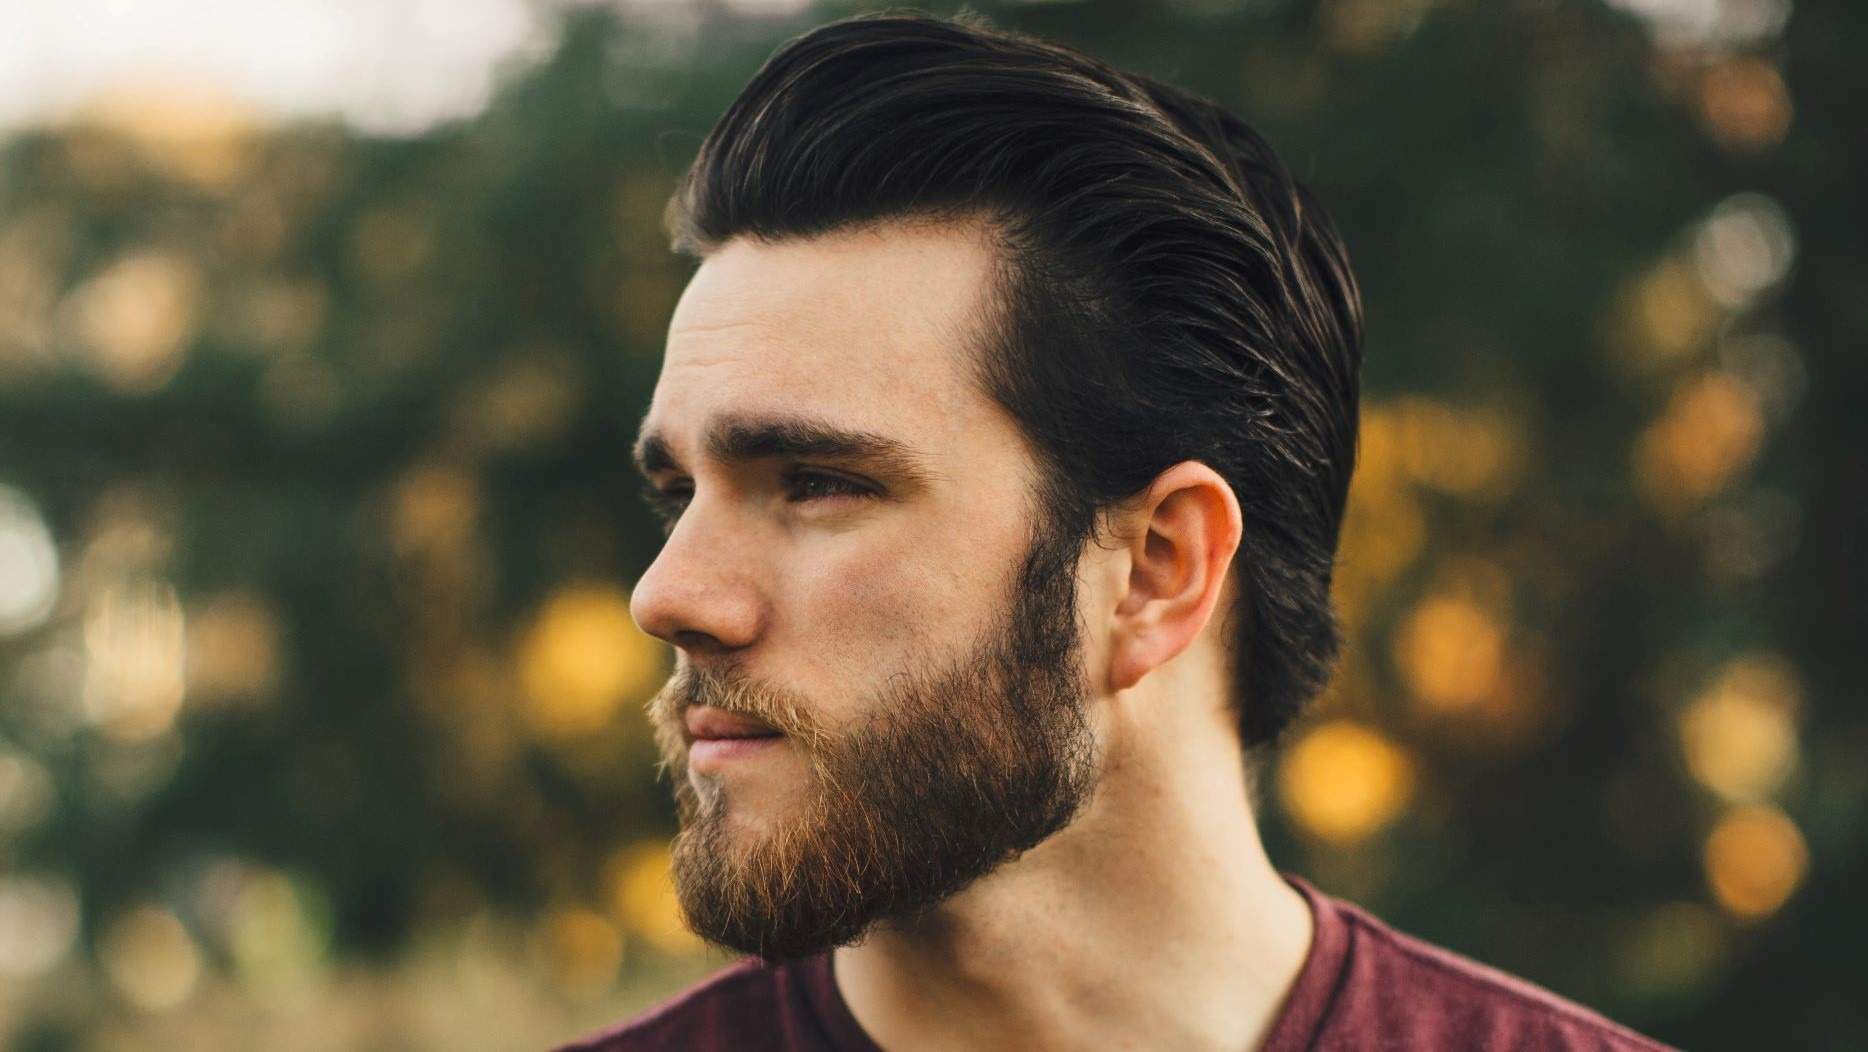 guy with receding hairline